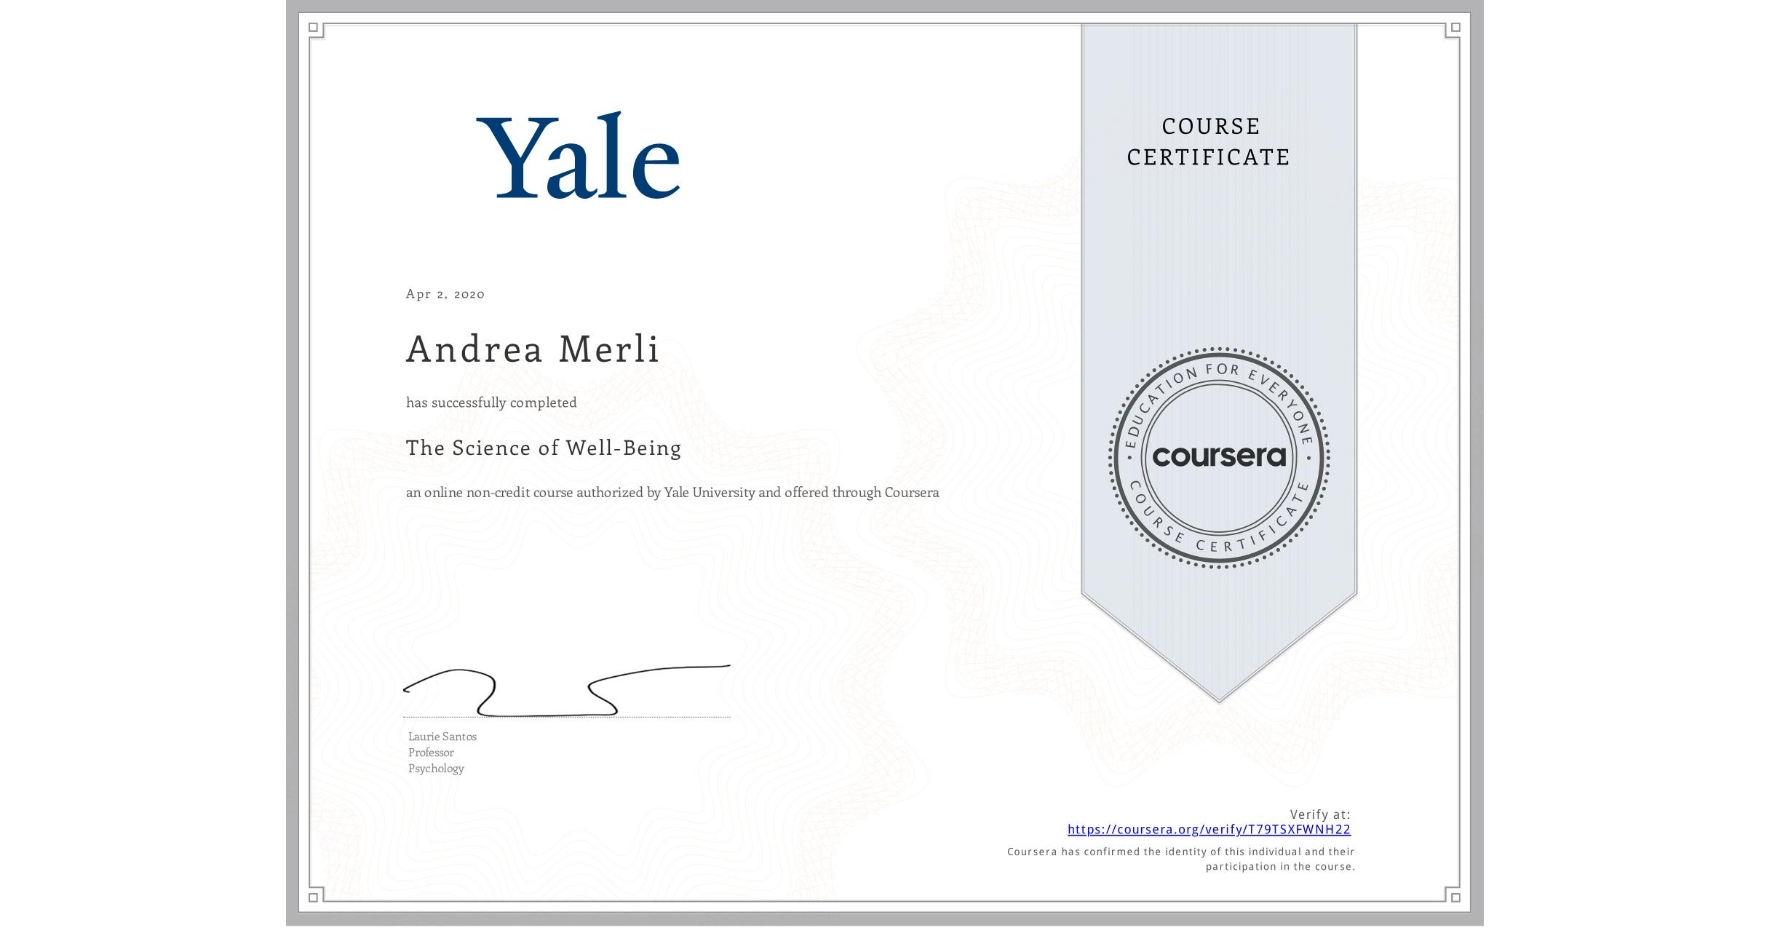 View certificate for Andrea Merli, The Science of Well-Being, an online non-credit course authorized by Yale University and offered through Coursera